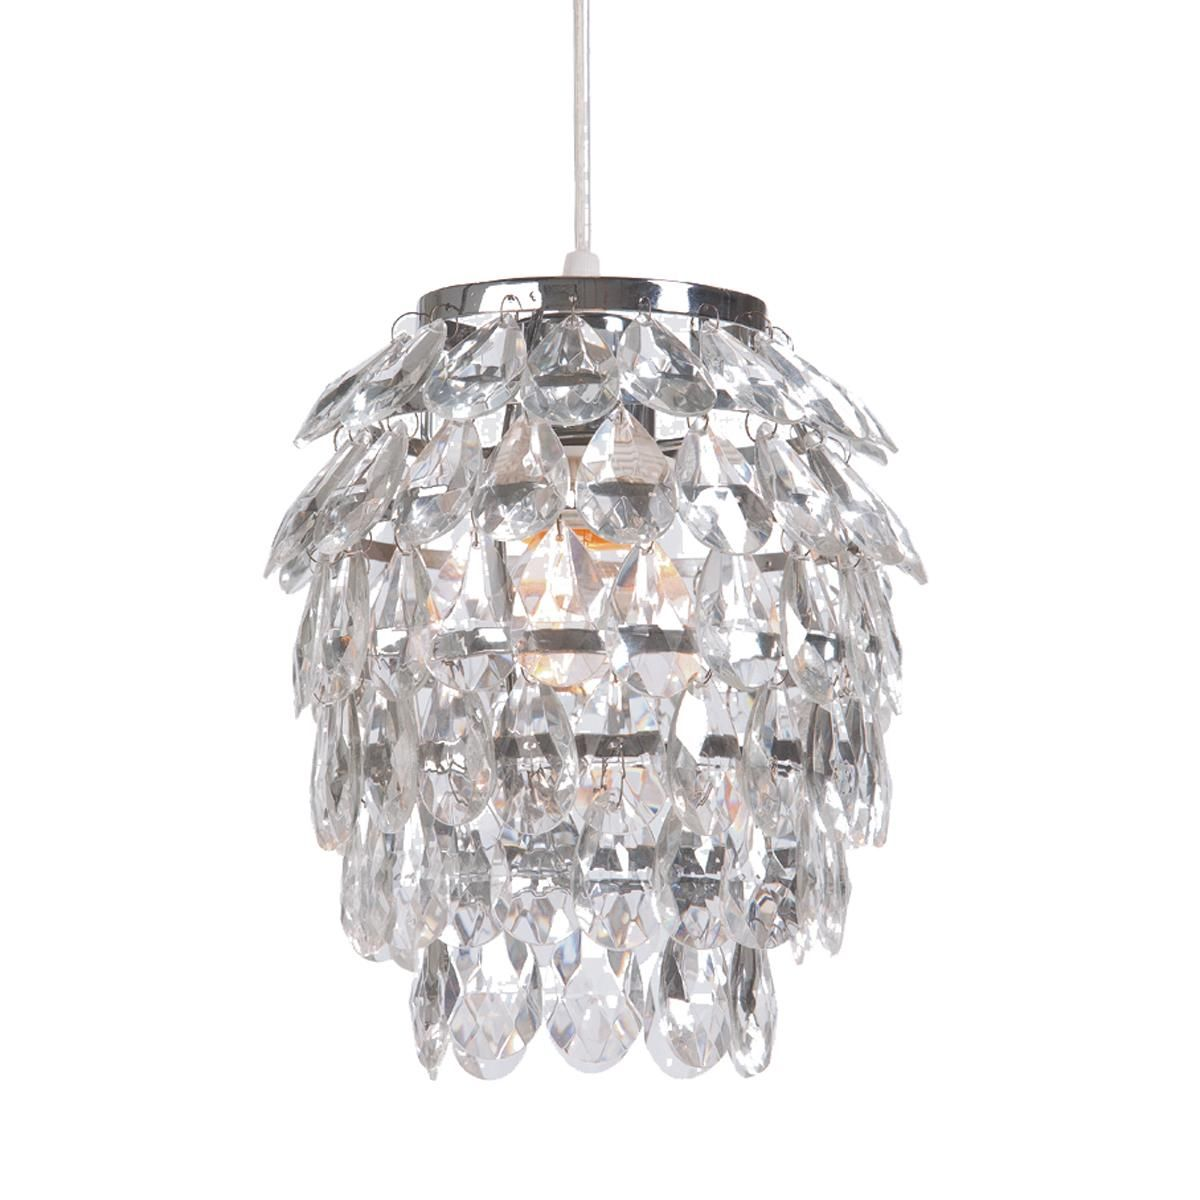 Crystal curtain mini pendant light small mini pendant lights crystal curtain mini pendant light small arubaitofo Choice Image